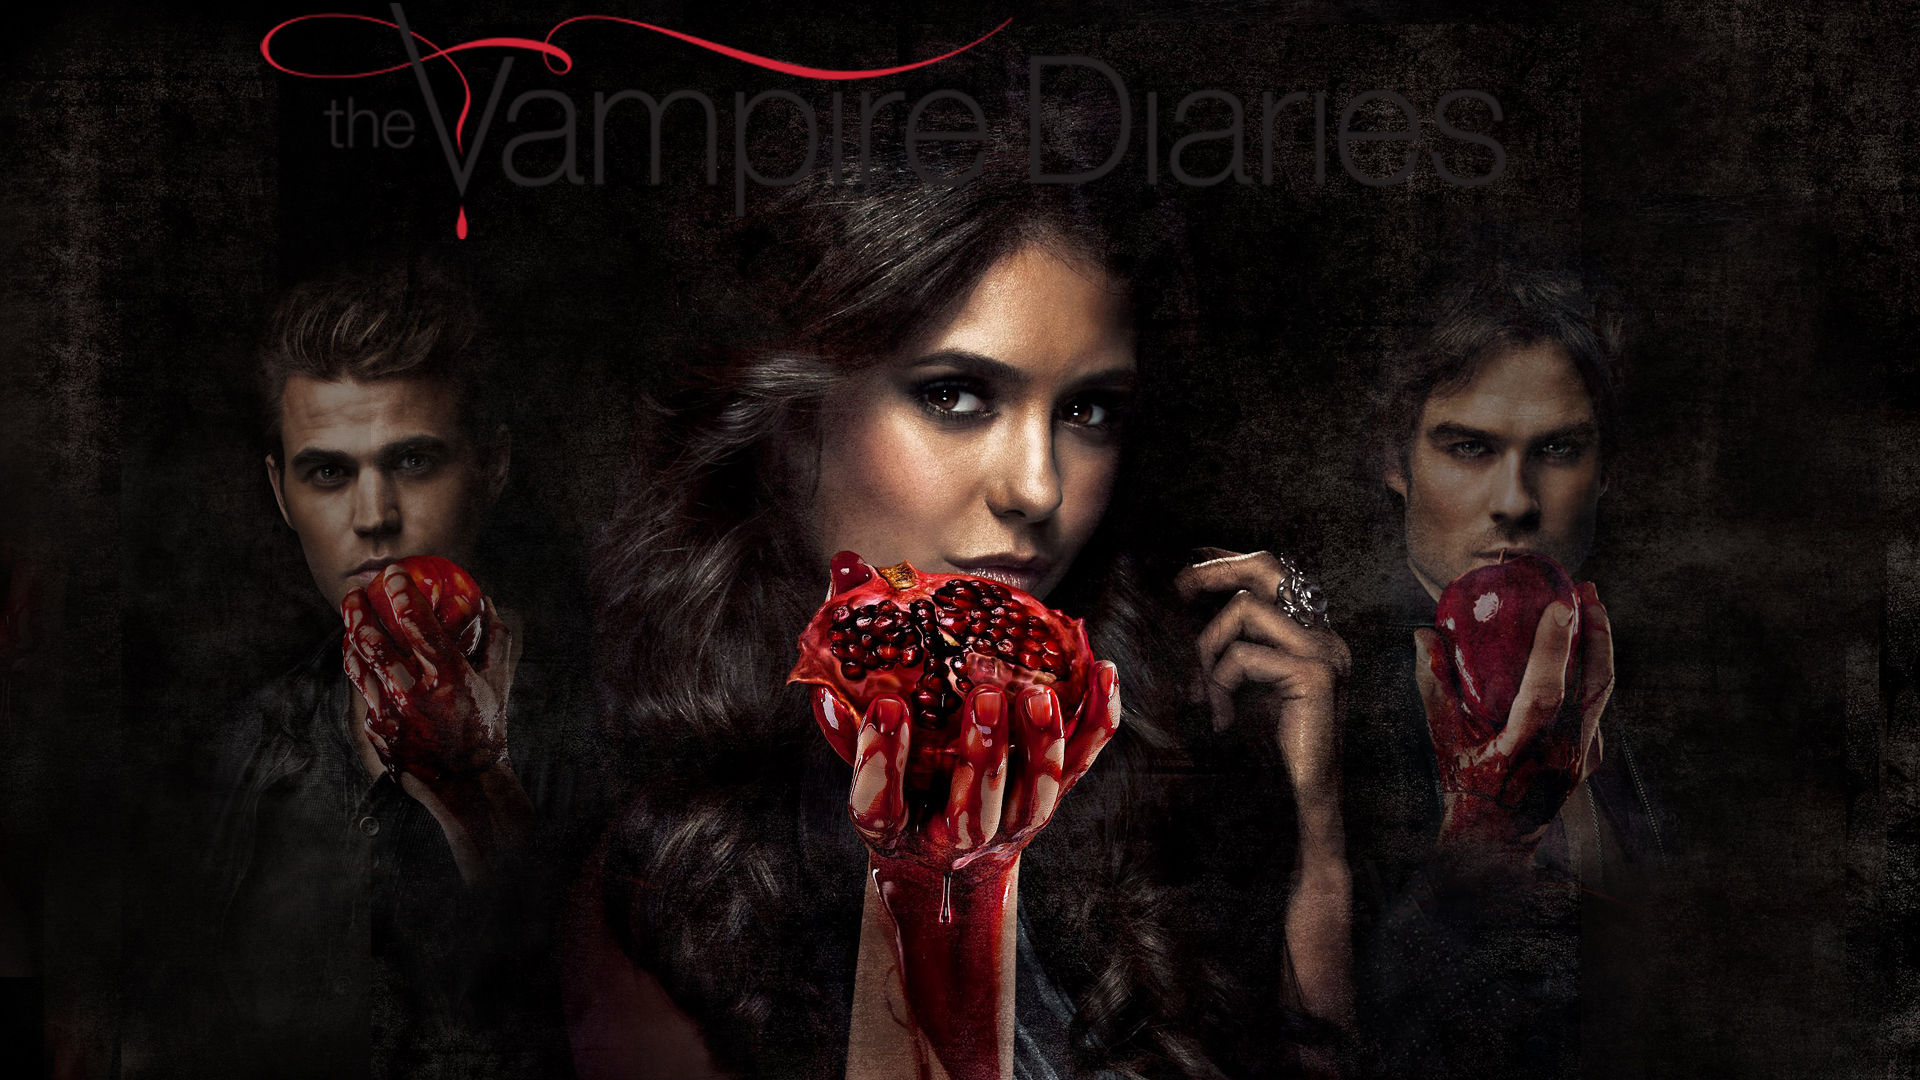 Wallpaper The Vampire Diaries: The Vampire Diaries 3 Wallpaper